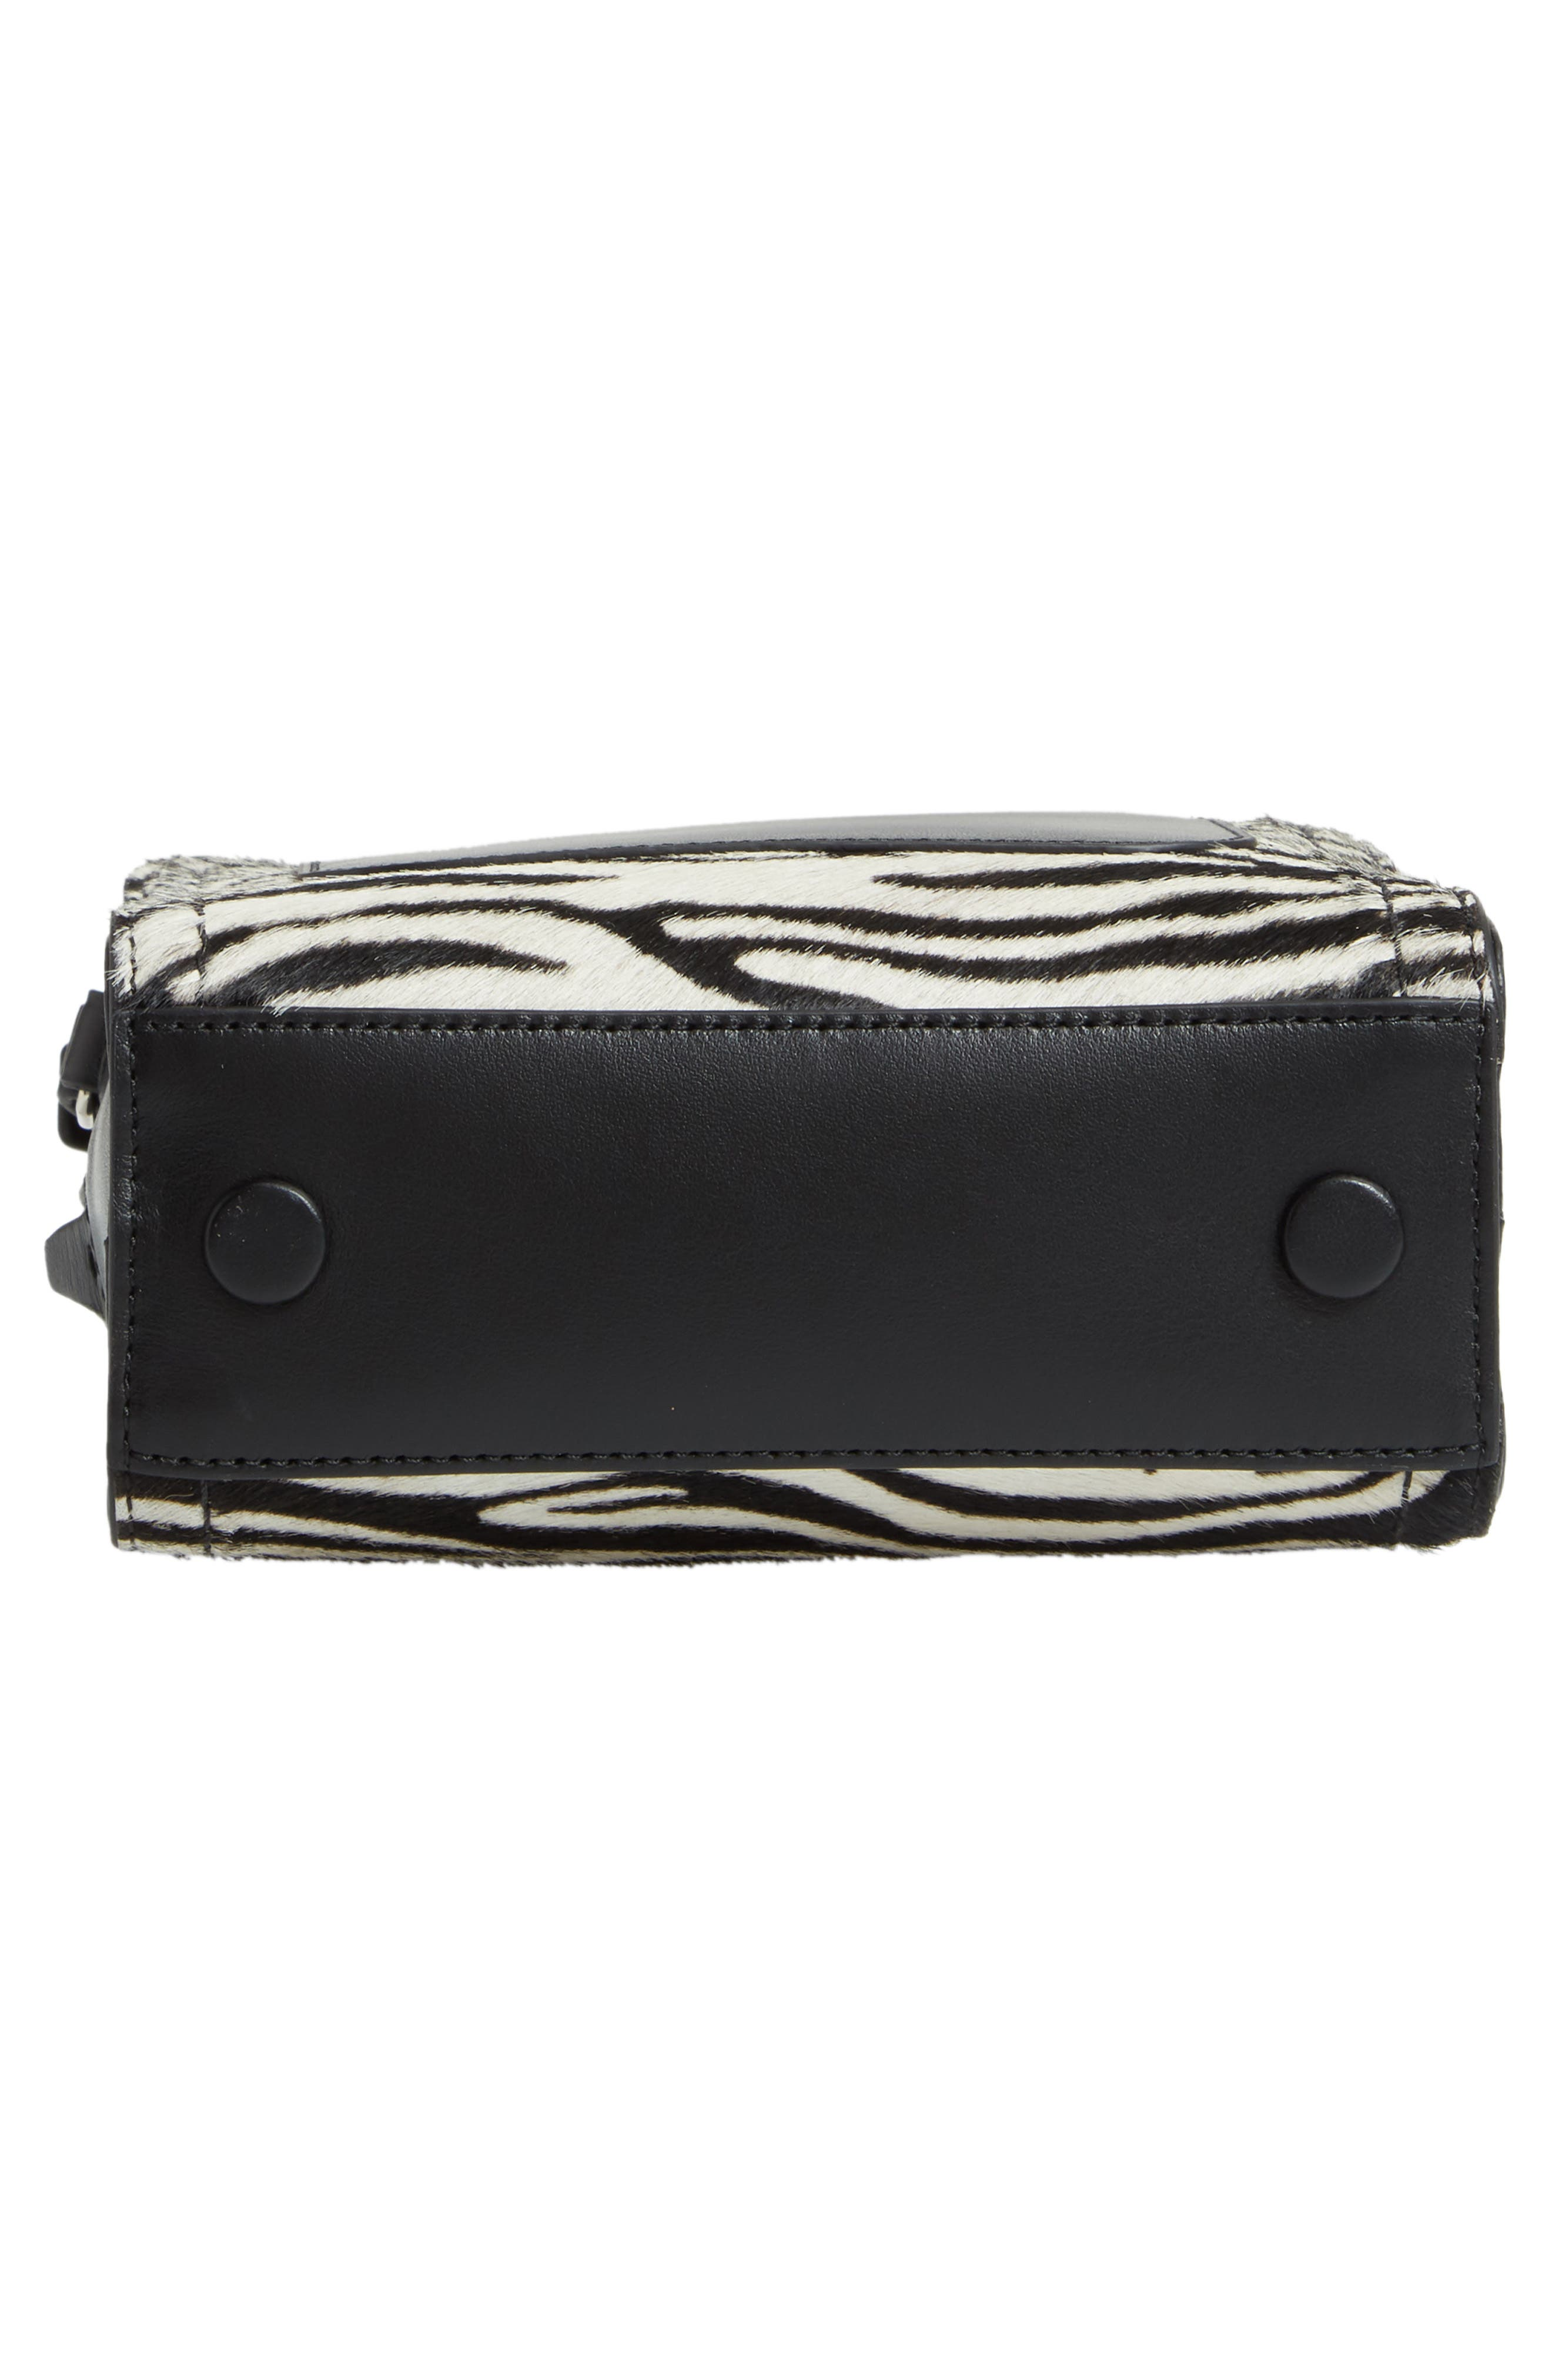 Mini Hudson Genuine Calf Hair & Leather Crossbody Bag,                             Alternate thumbnail 6, color,                             100